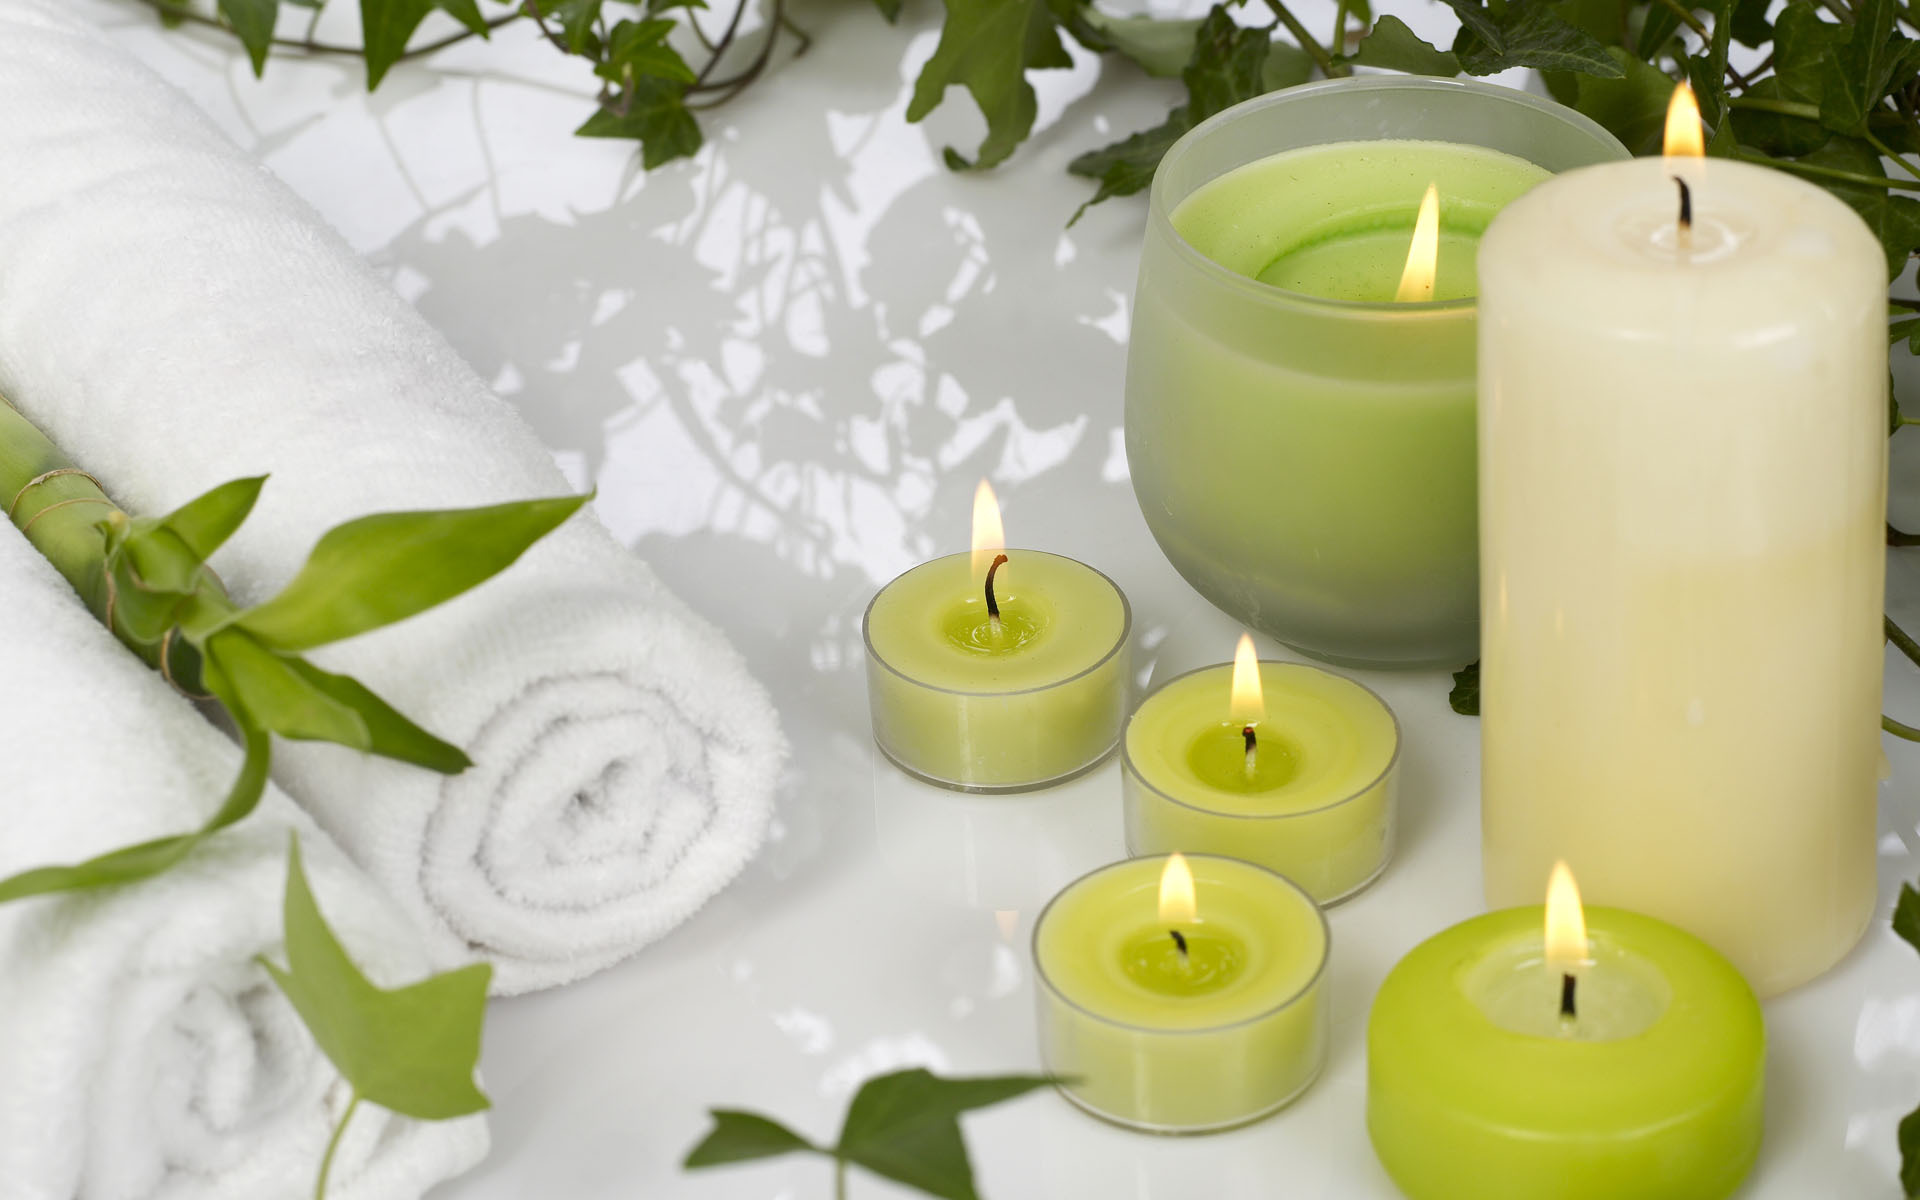 ShijiazhuangGaocheng Fengyuan Candle Co., Ltd